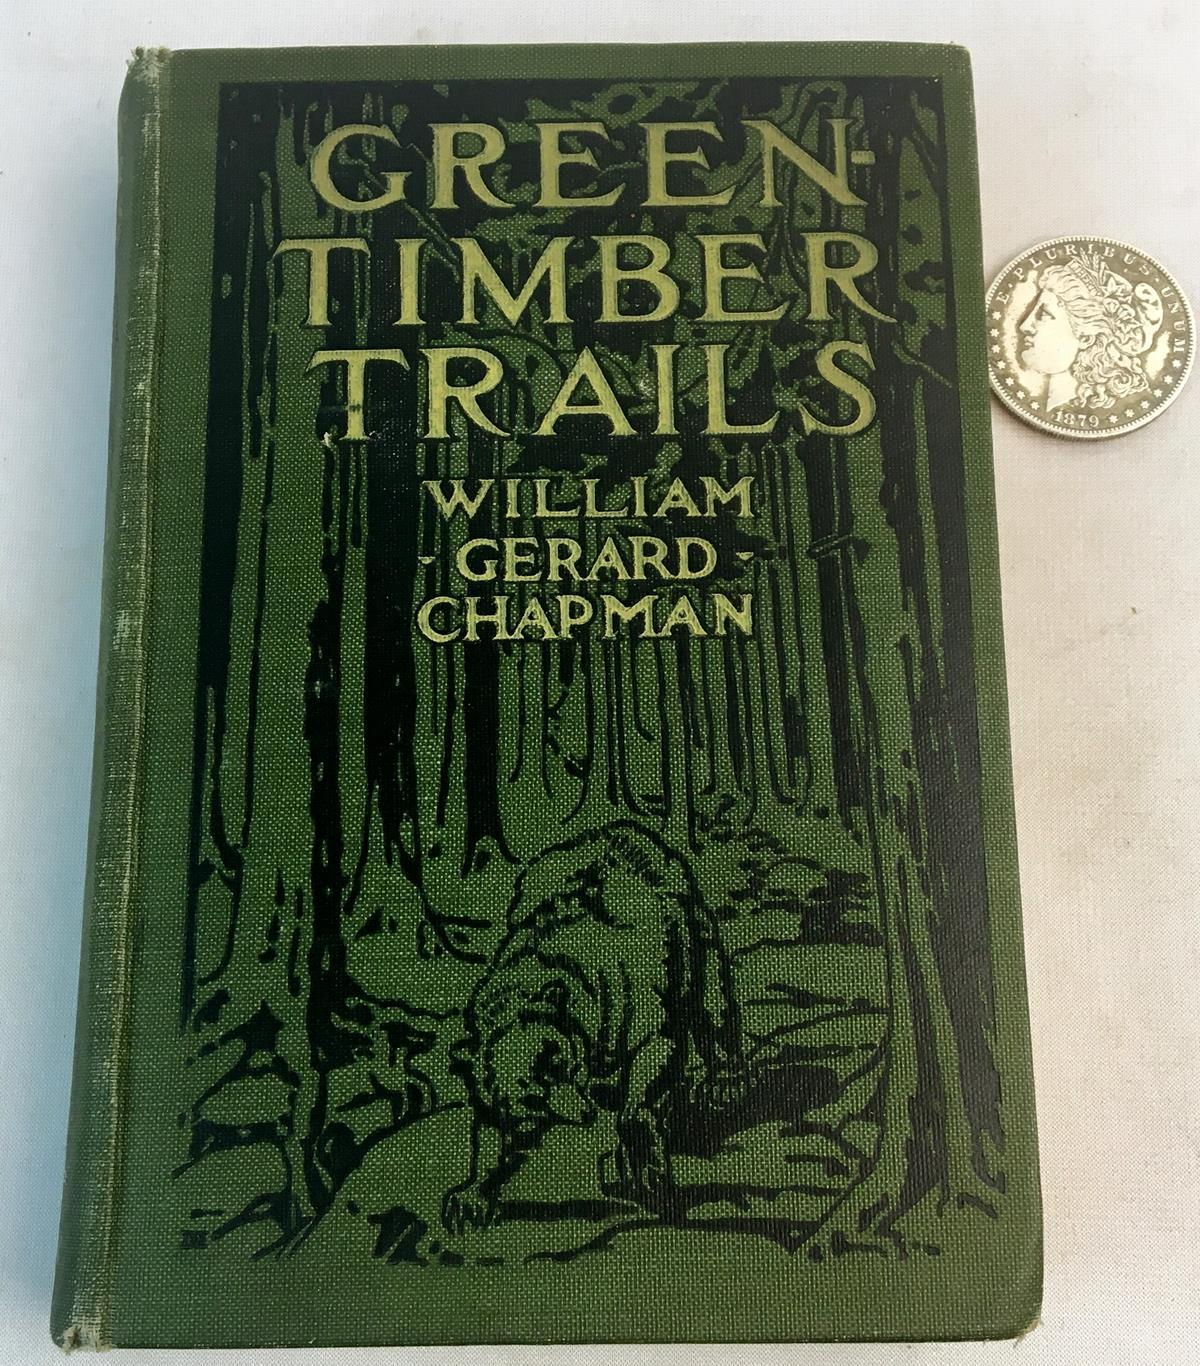 1919 Green Timber Trails: Wild Animal Stories of the Upper Fur Country by William Gerard Chapman Illustrated FIRST EDITION